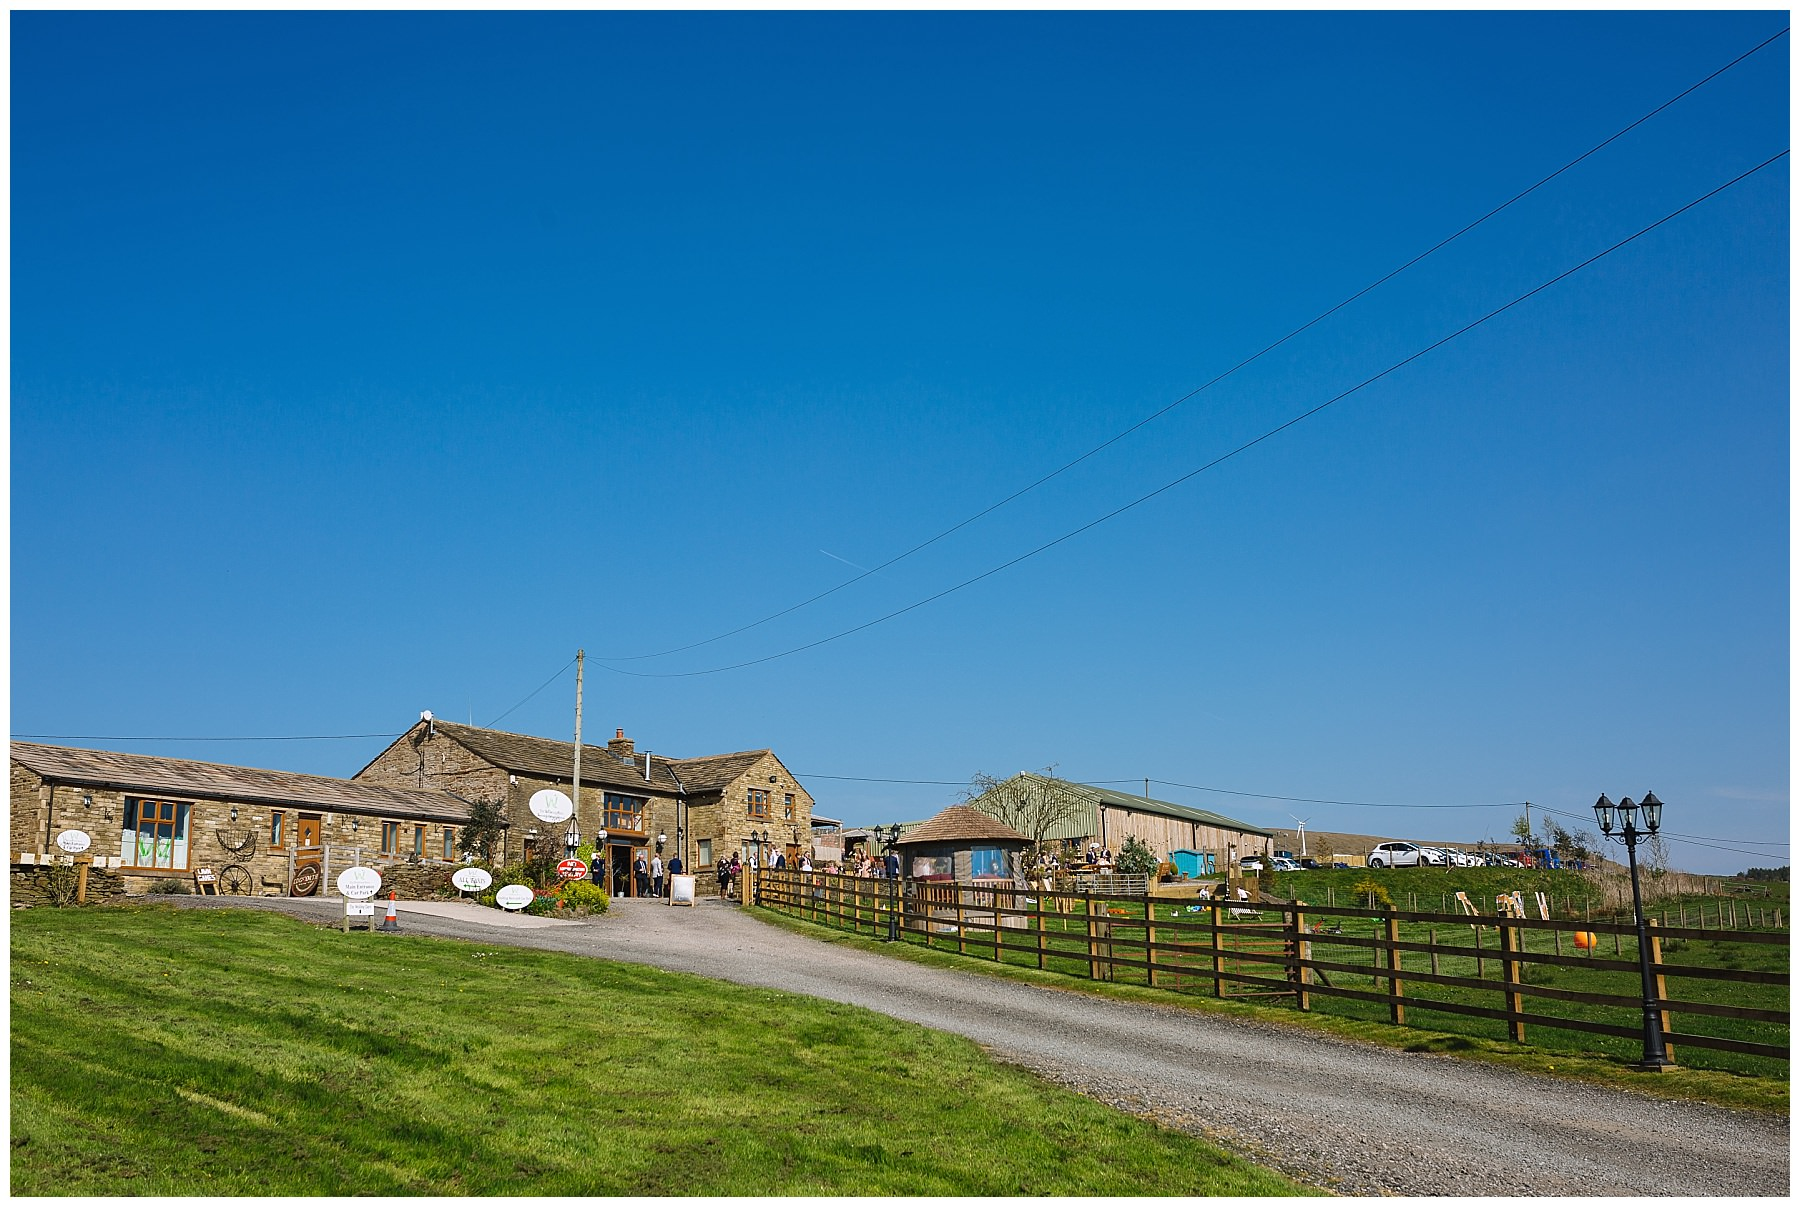 wellbeing farm wedding venue